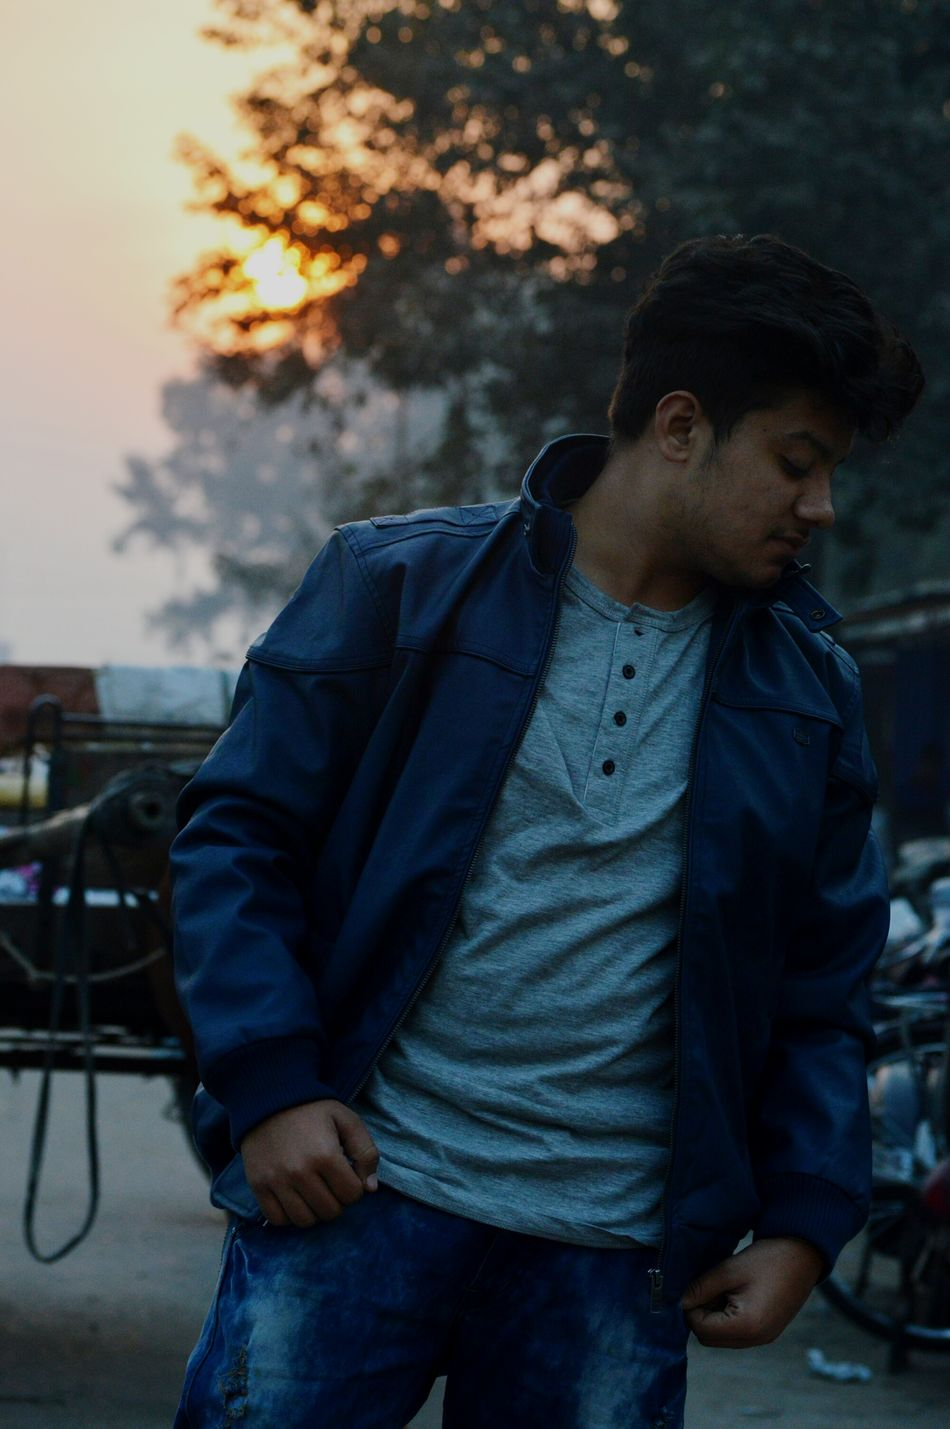 Only Men Outdoors One Man Only One Person City Males  Sunset Sky Day Traveling Home For The Holidays People Smoke - Physical Structure Model Pose Model Shoot Modeling Shoot Winter Scenery JammuandKashmir DSLR Photography D3200 D3200nikon Nikon Nikonphotography Amateurphotography